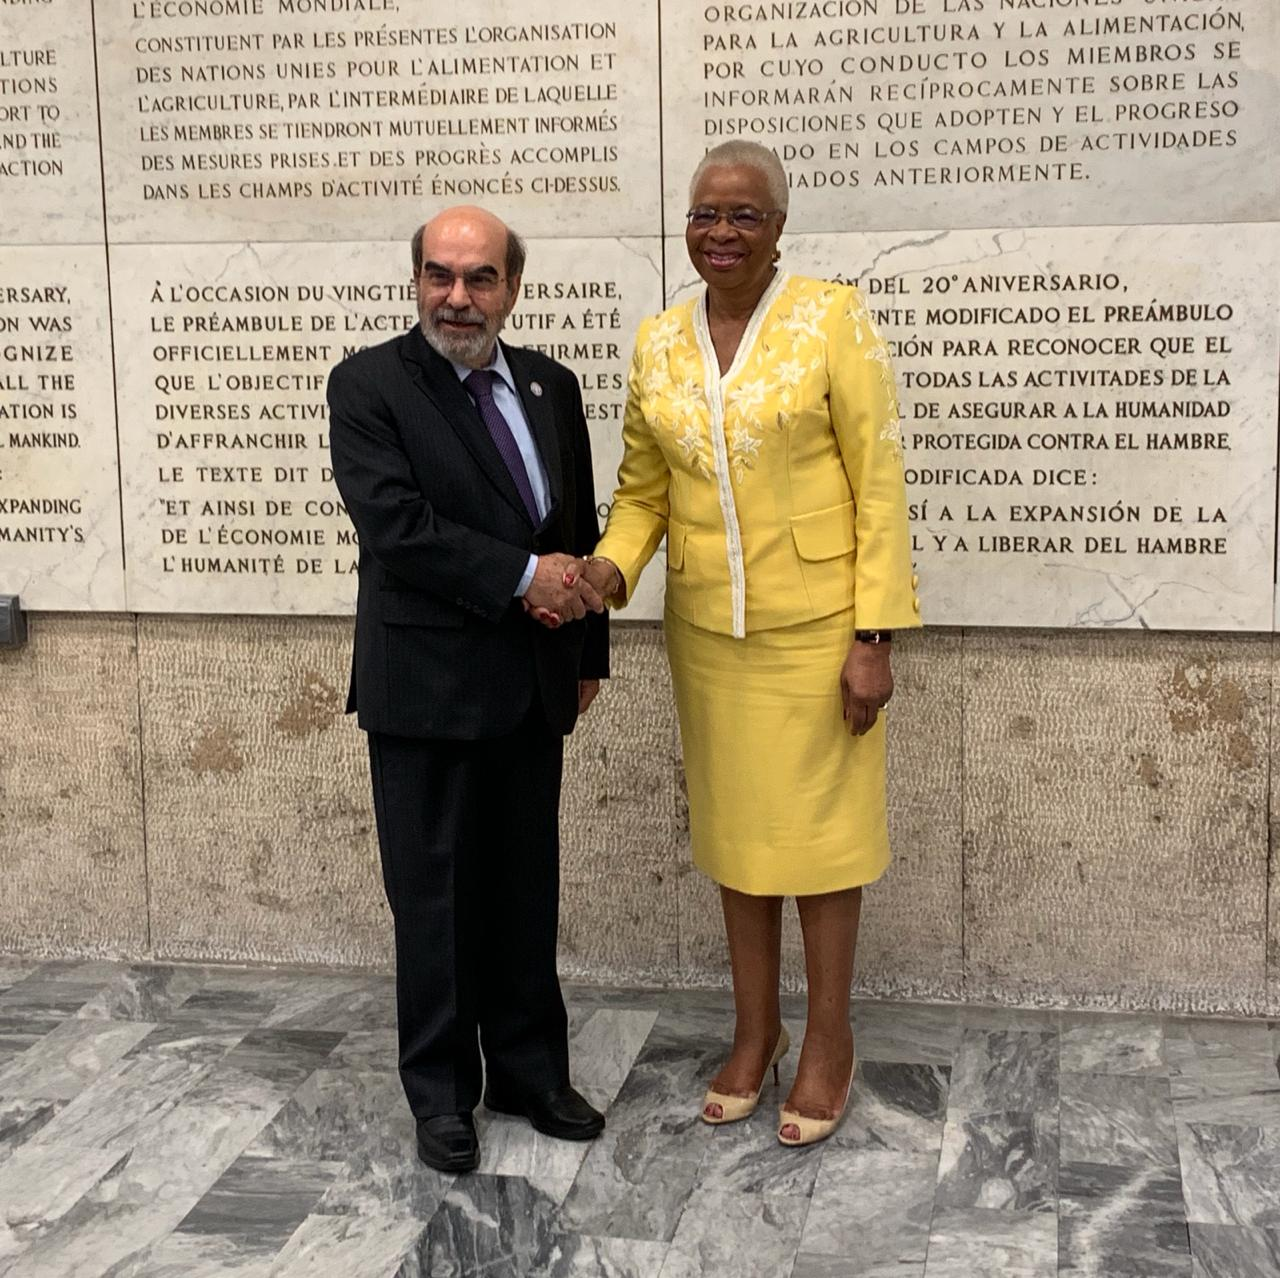 Graça Machel with Director-General of the FAO, José Graziano da Silva of Brazil. Mr. Graziano da Silva will be suceeded by Qu Dongyu of China on 1 August 2019.